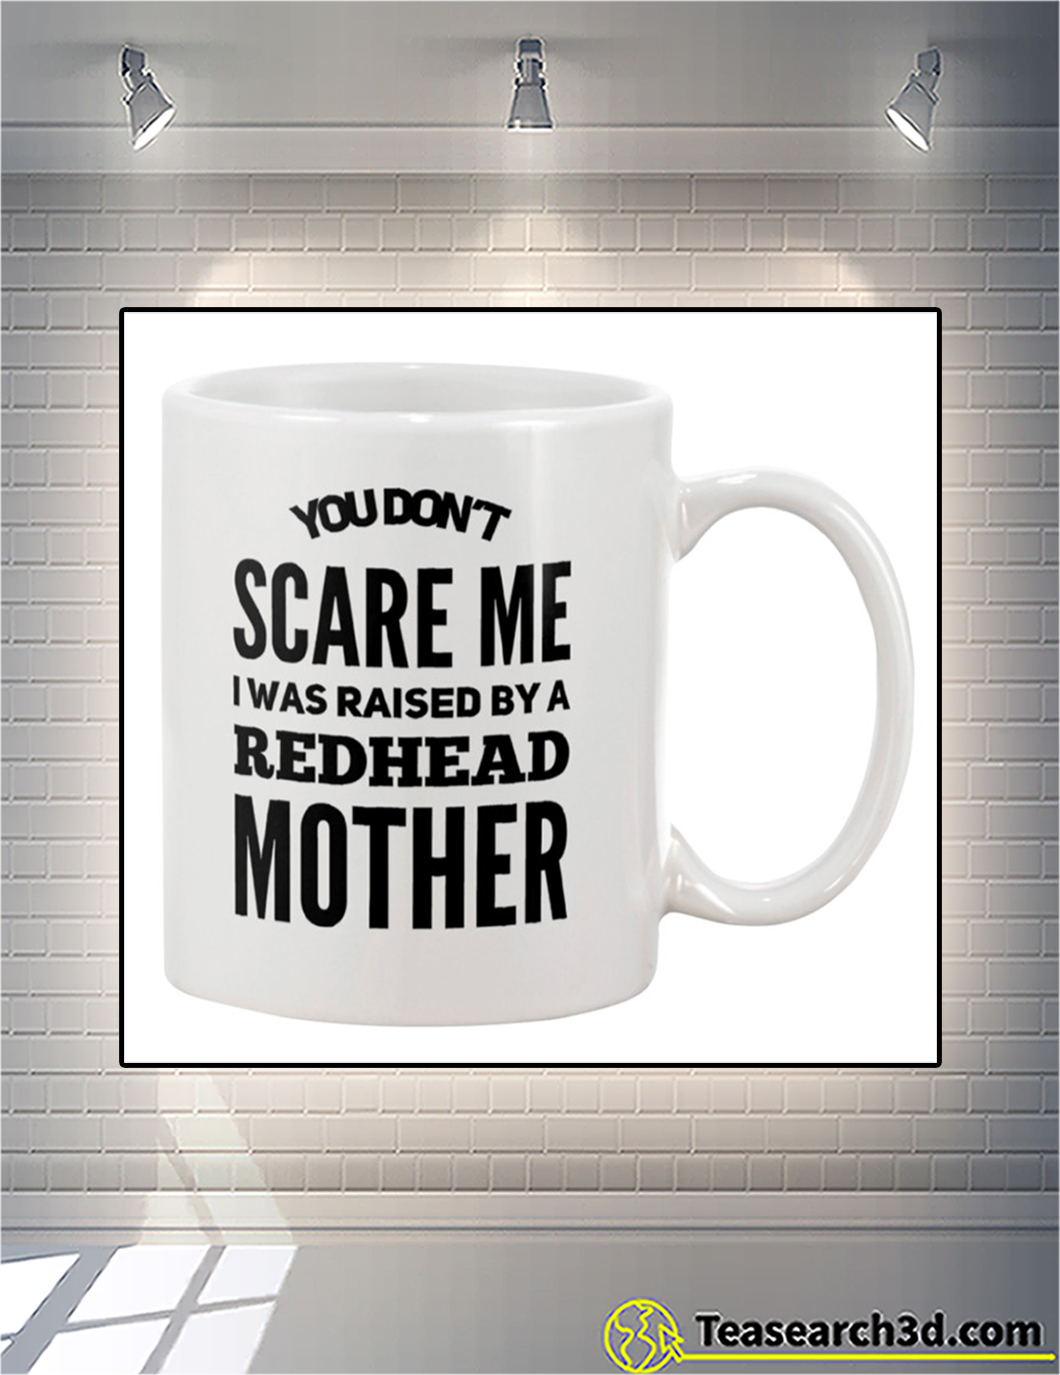 You don't scare me I was raised by a redhead mother mug front